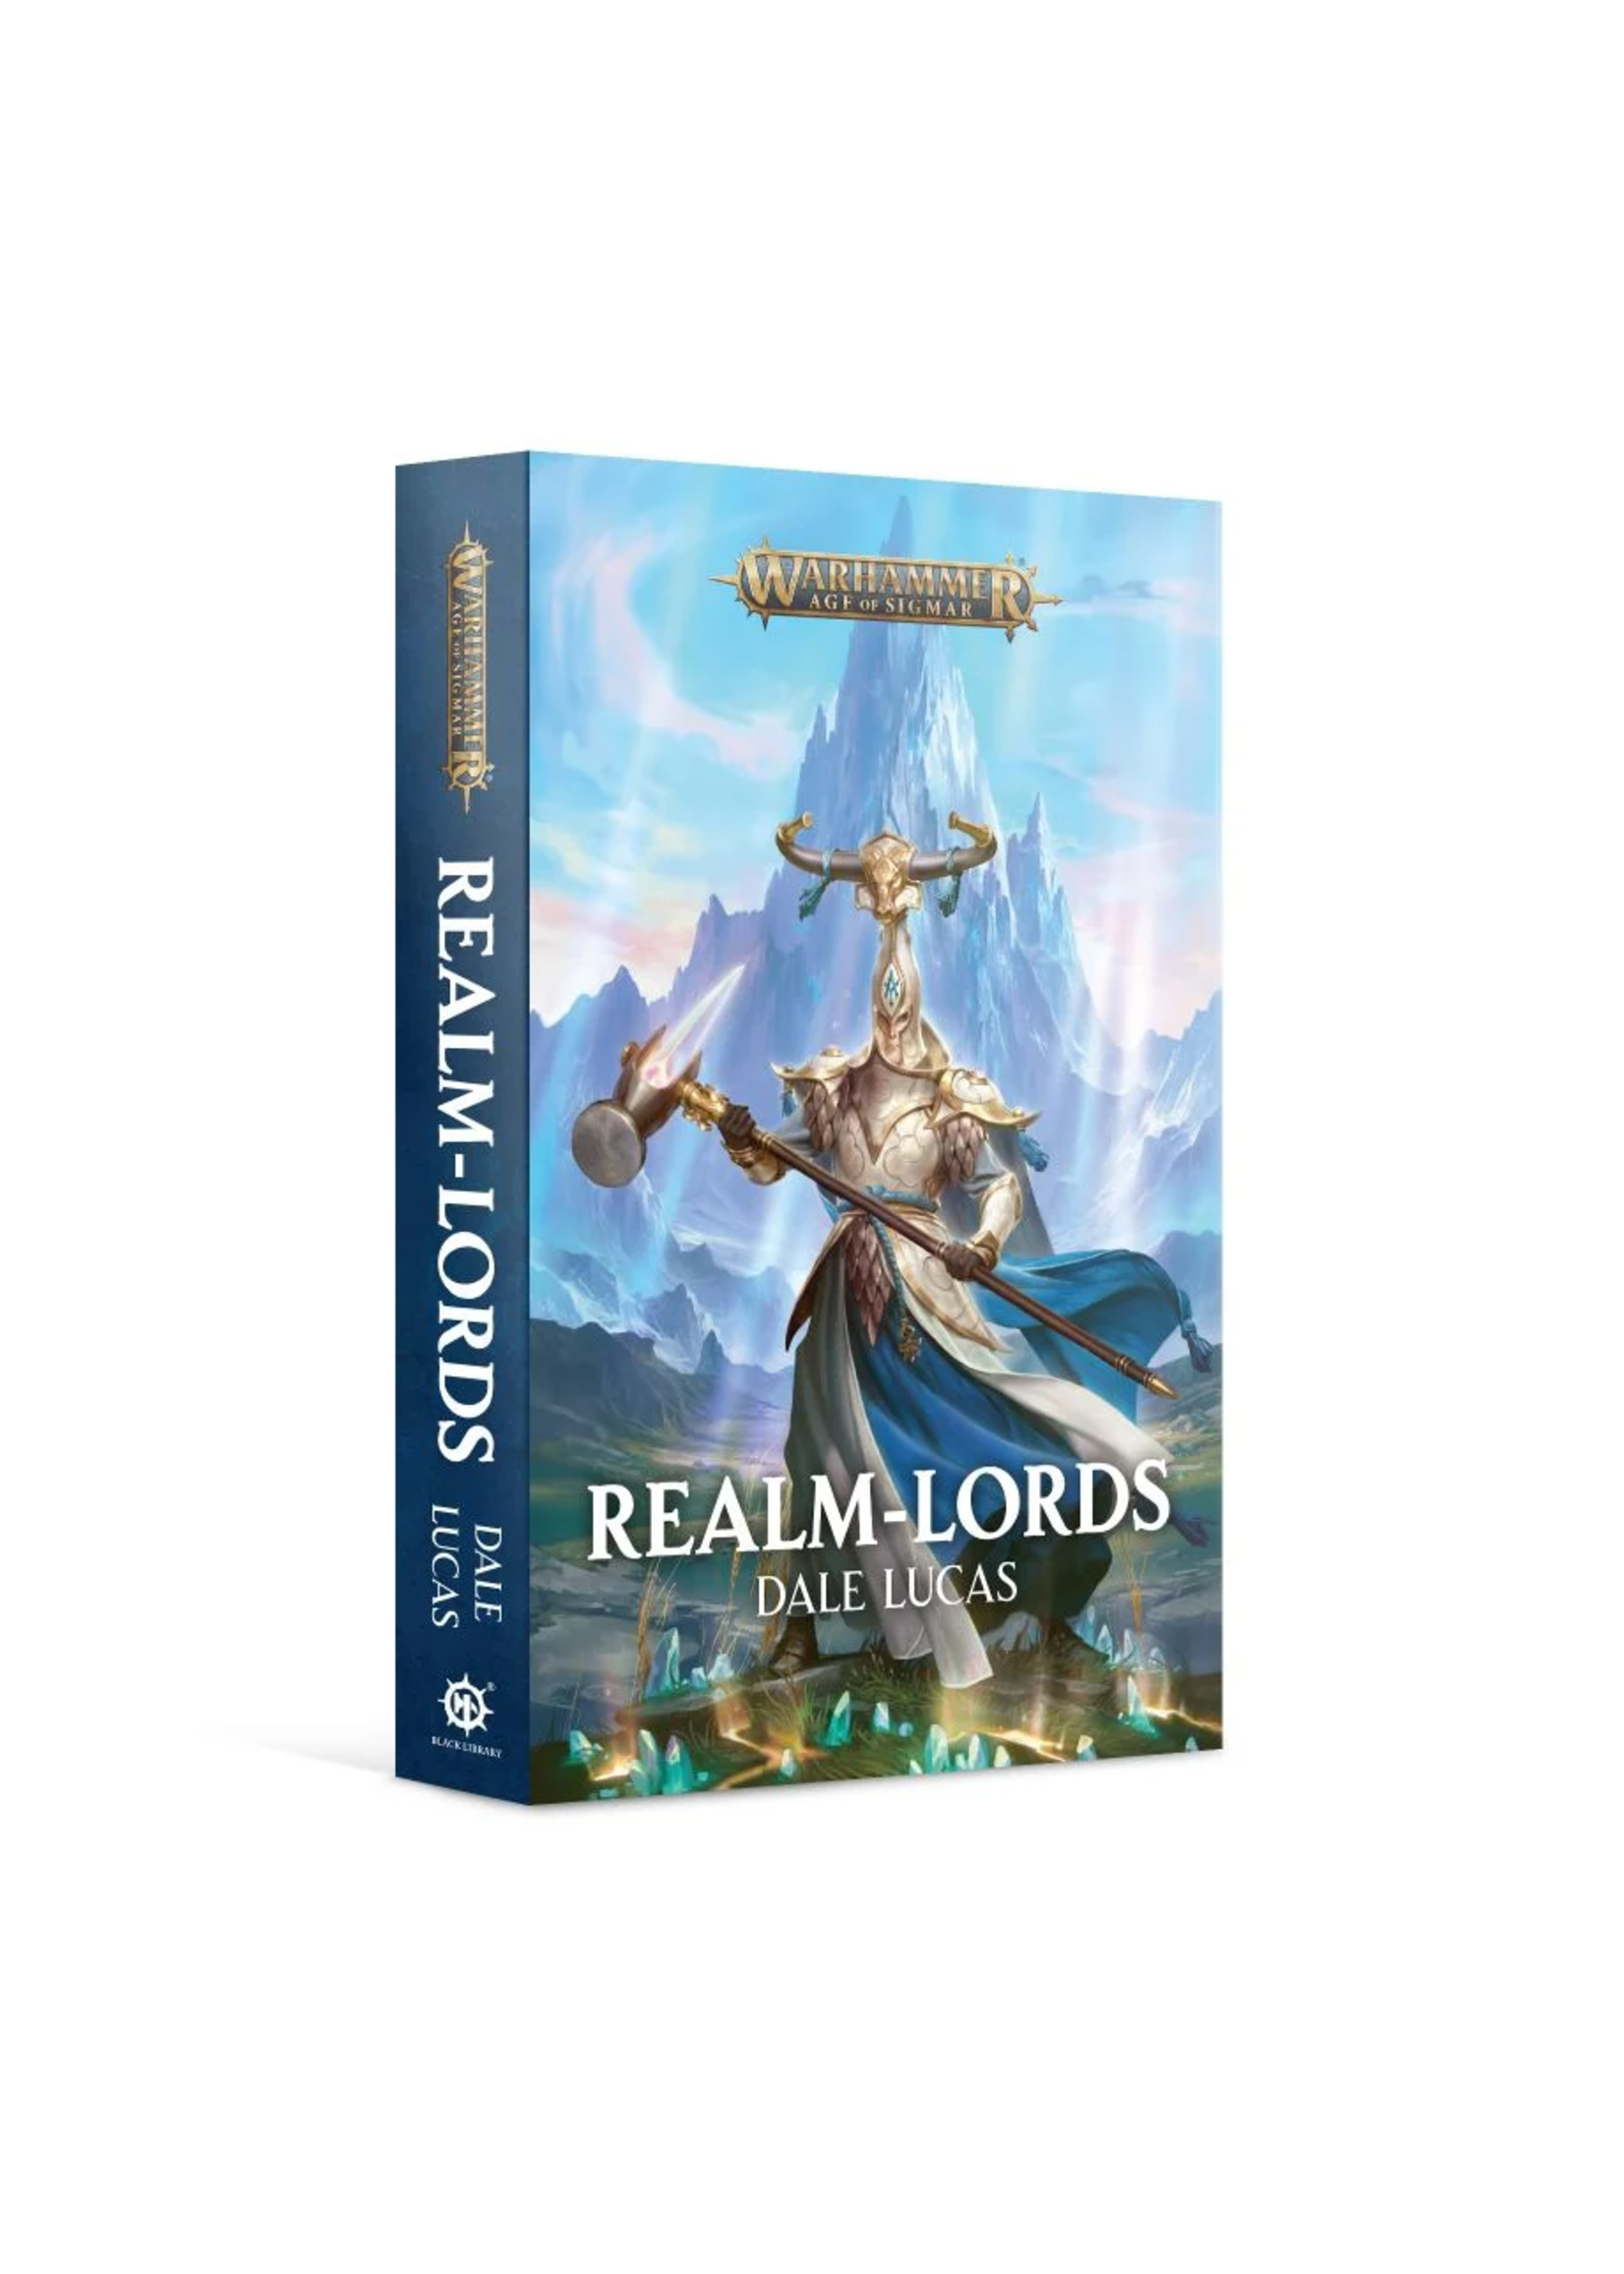 REALM-LORDS (PB)